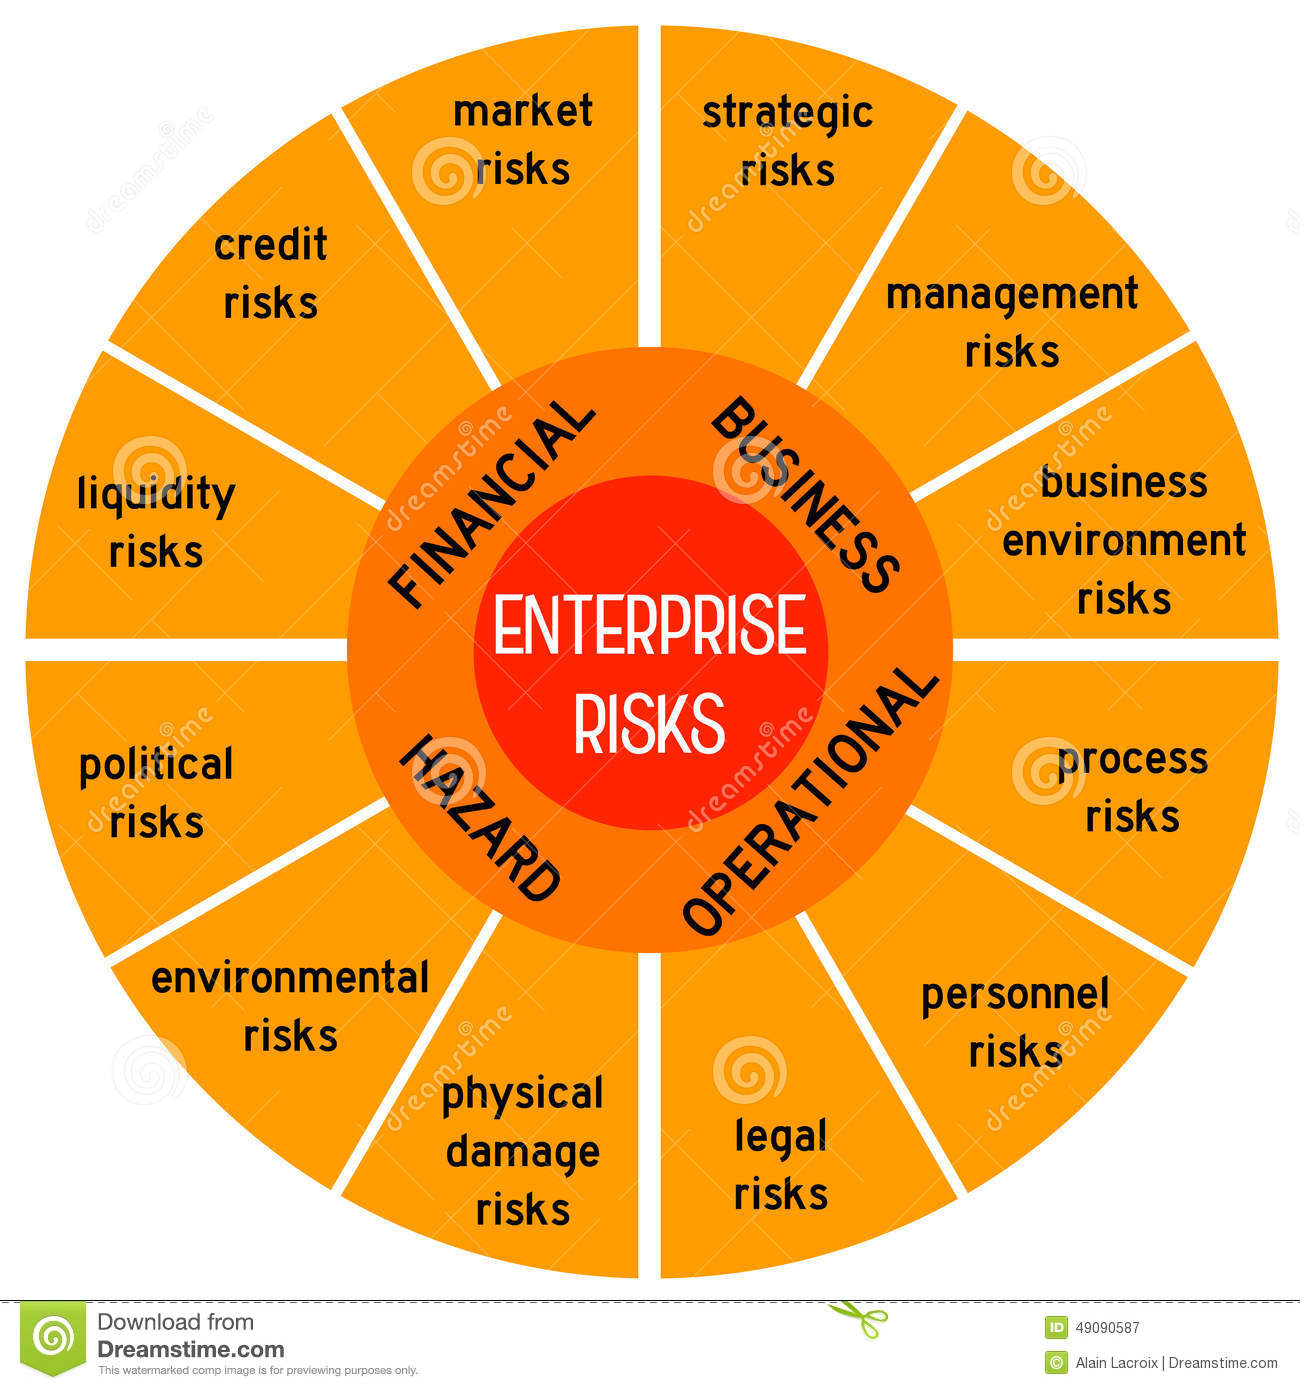 ... of enterprise risks: financial, business, operational and hazard